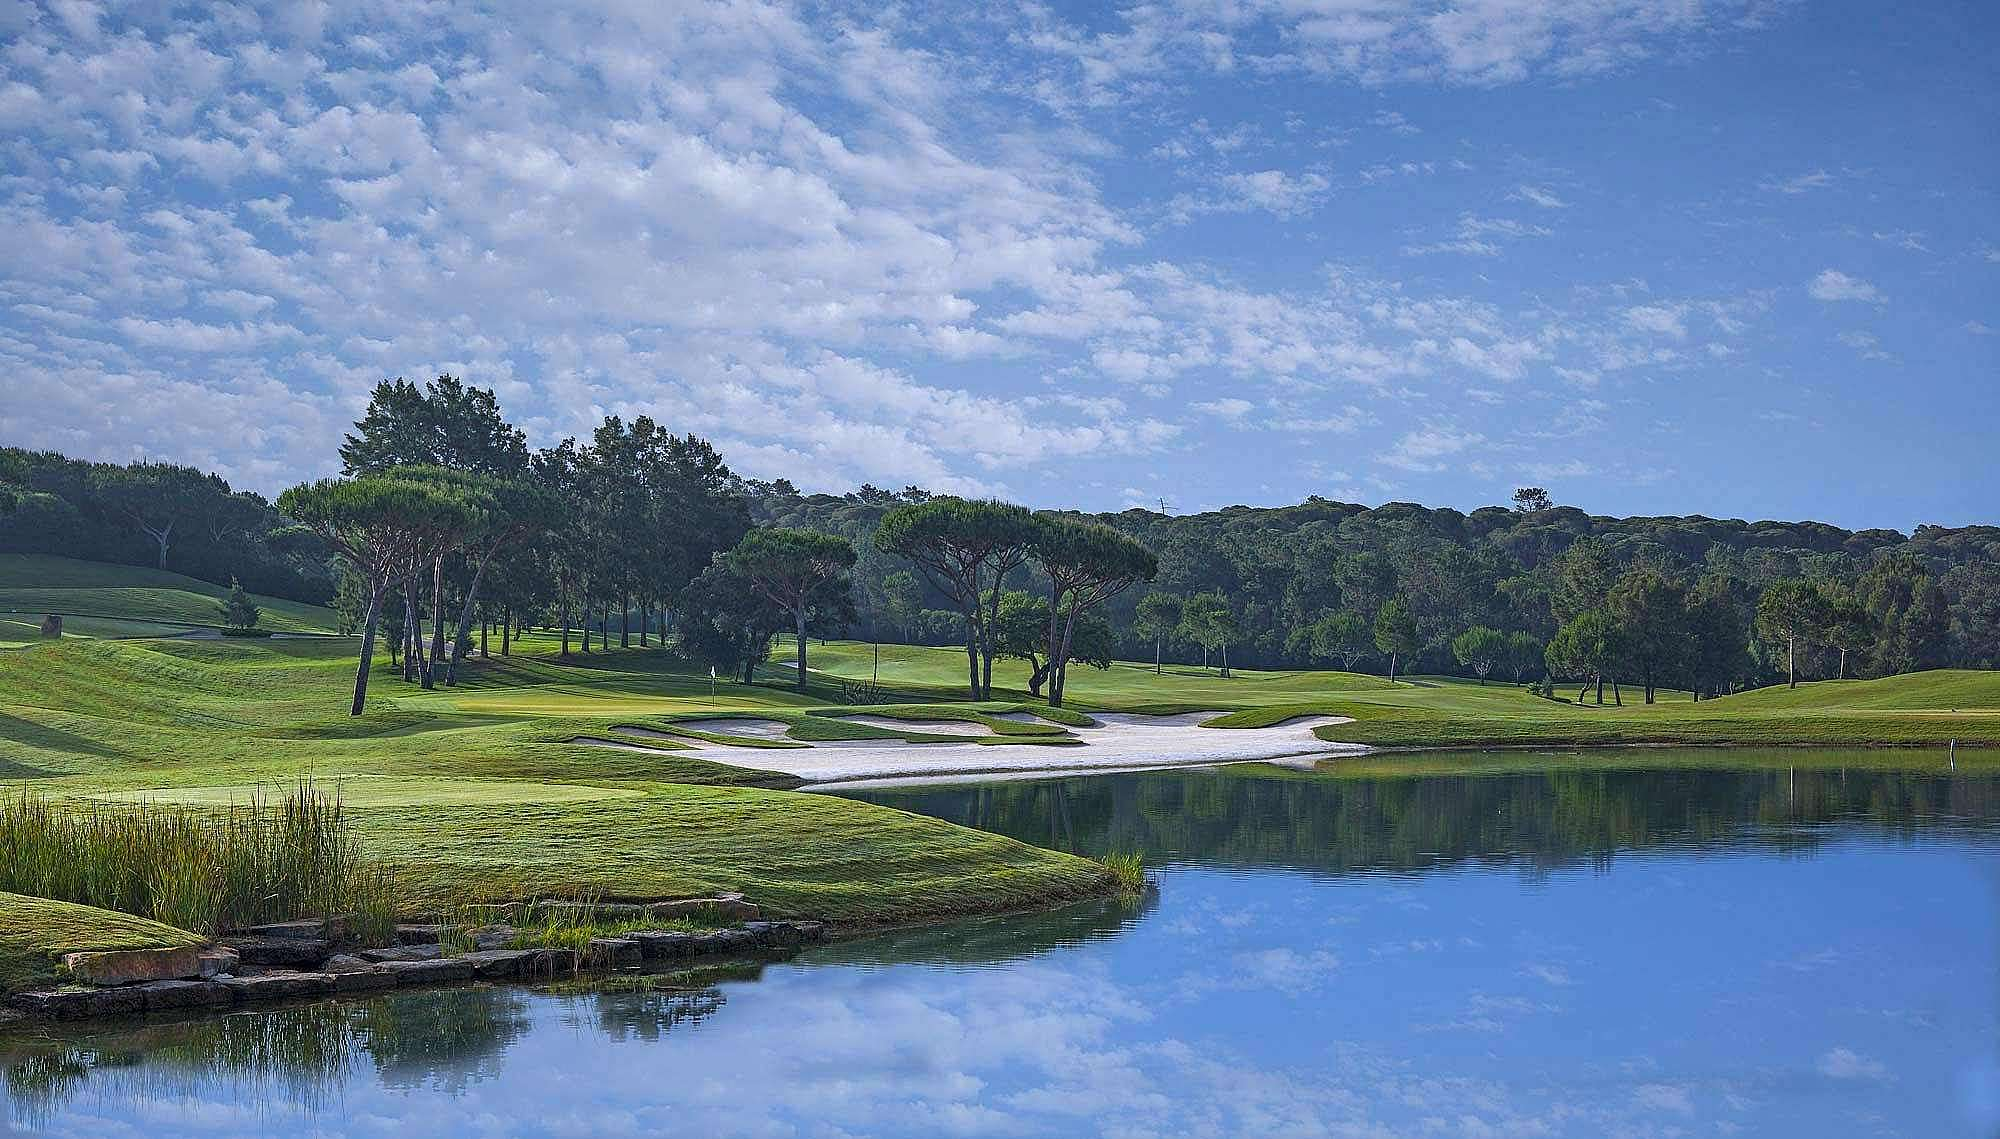 Quinta do Lago Laranjal golf course